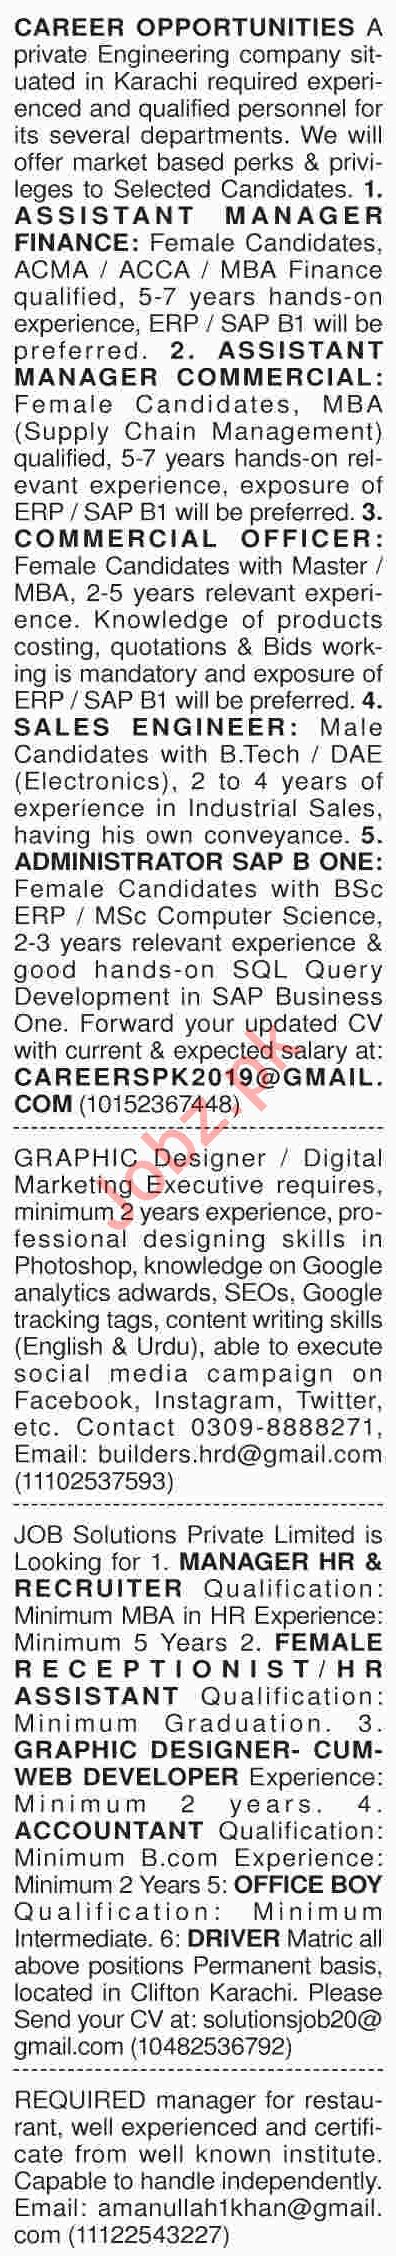 Dawn Sunday Classified Ads 14th April 2019 for Multiple